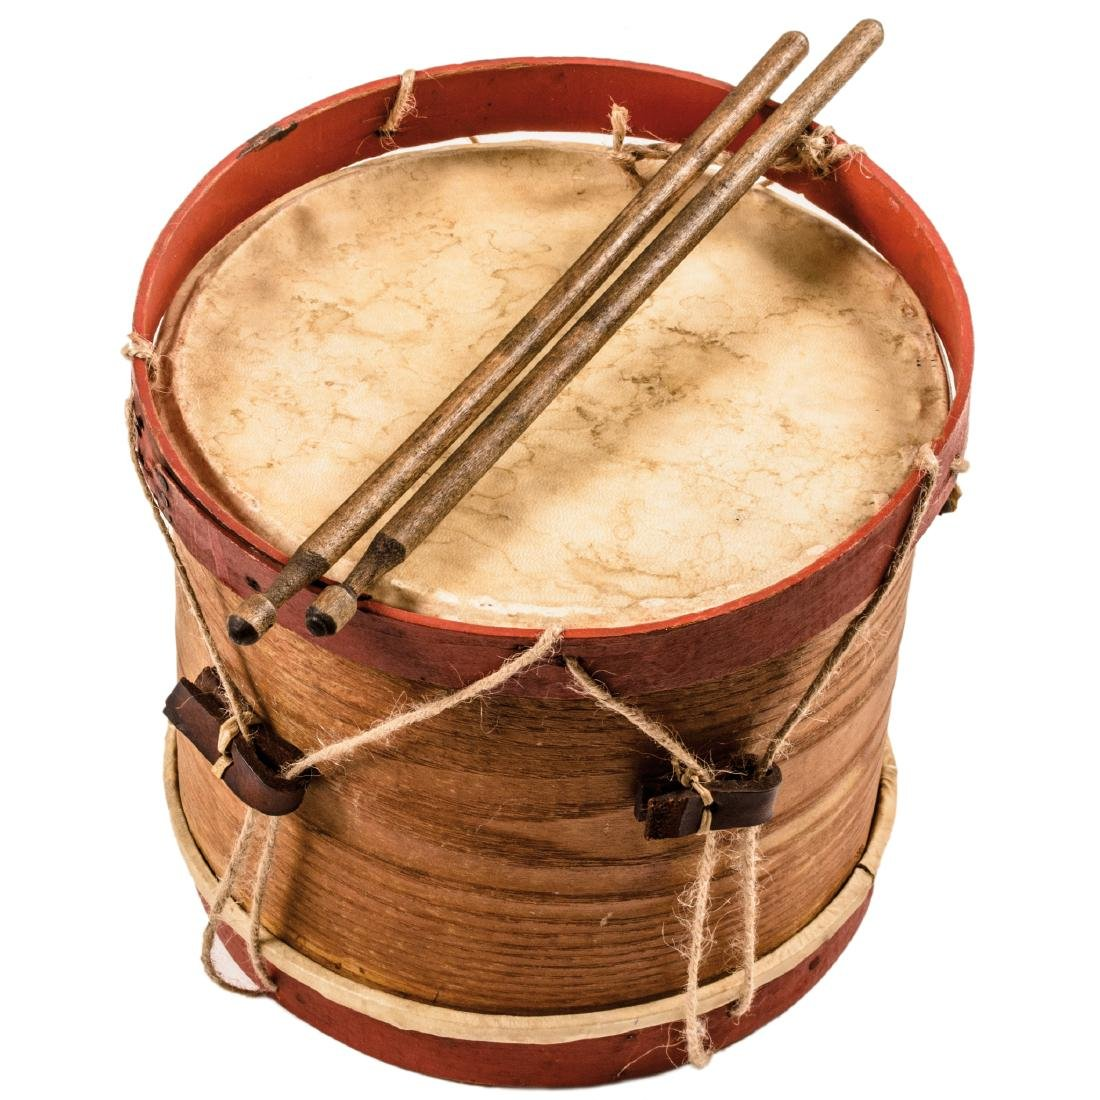 Civil War Era Child's Drum with Wooden Drumsticks - 2